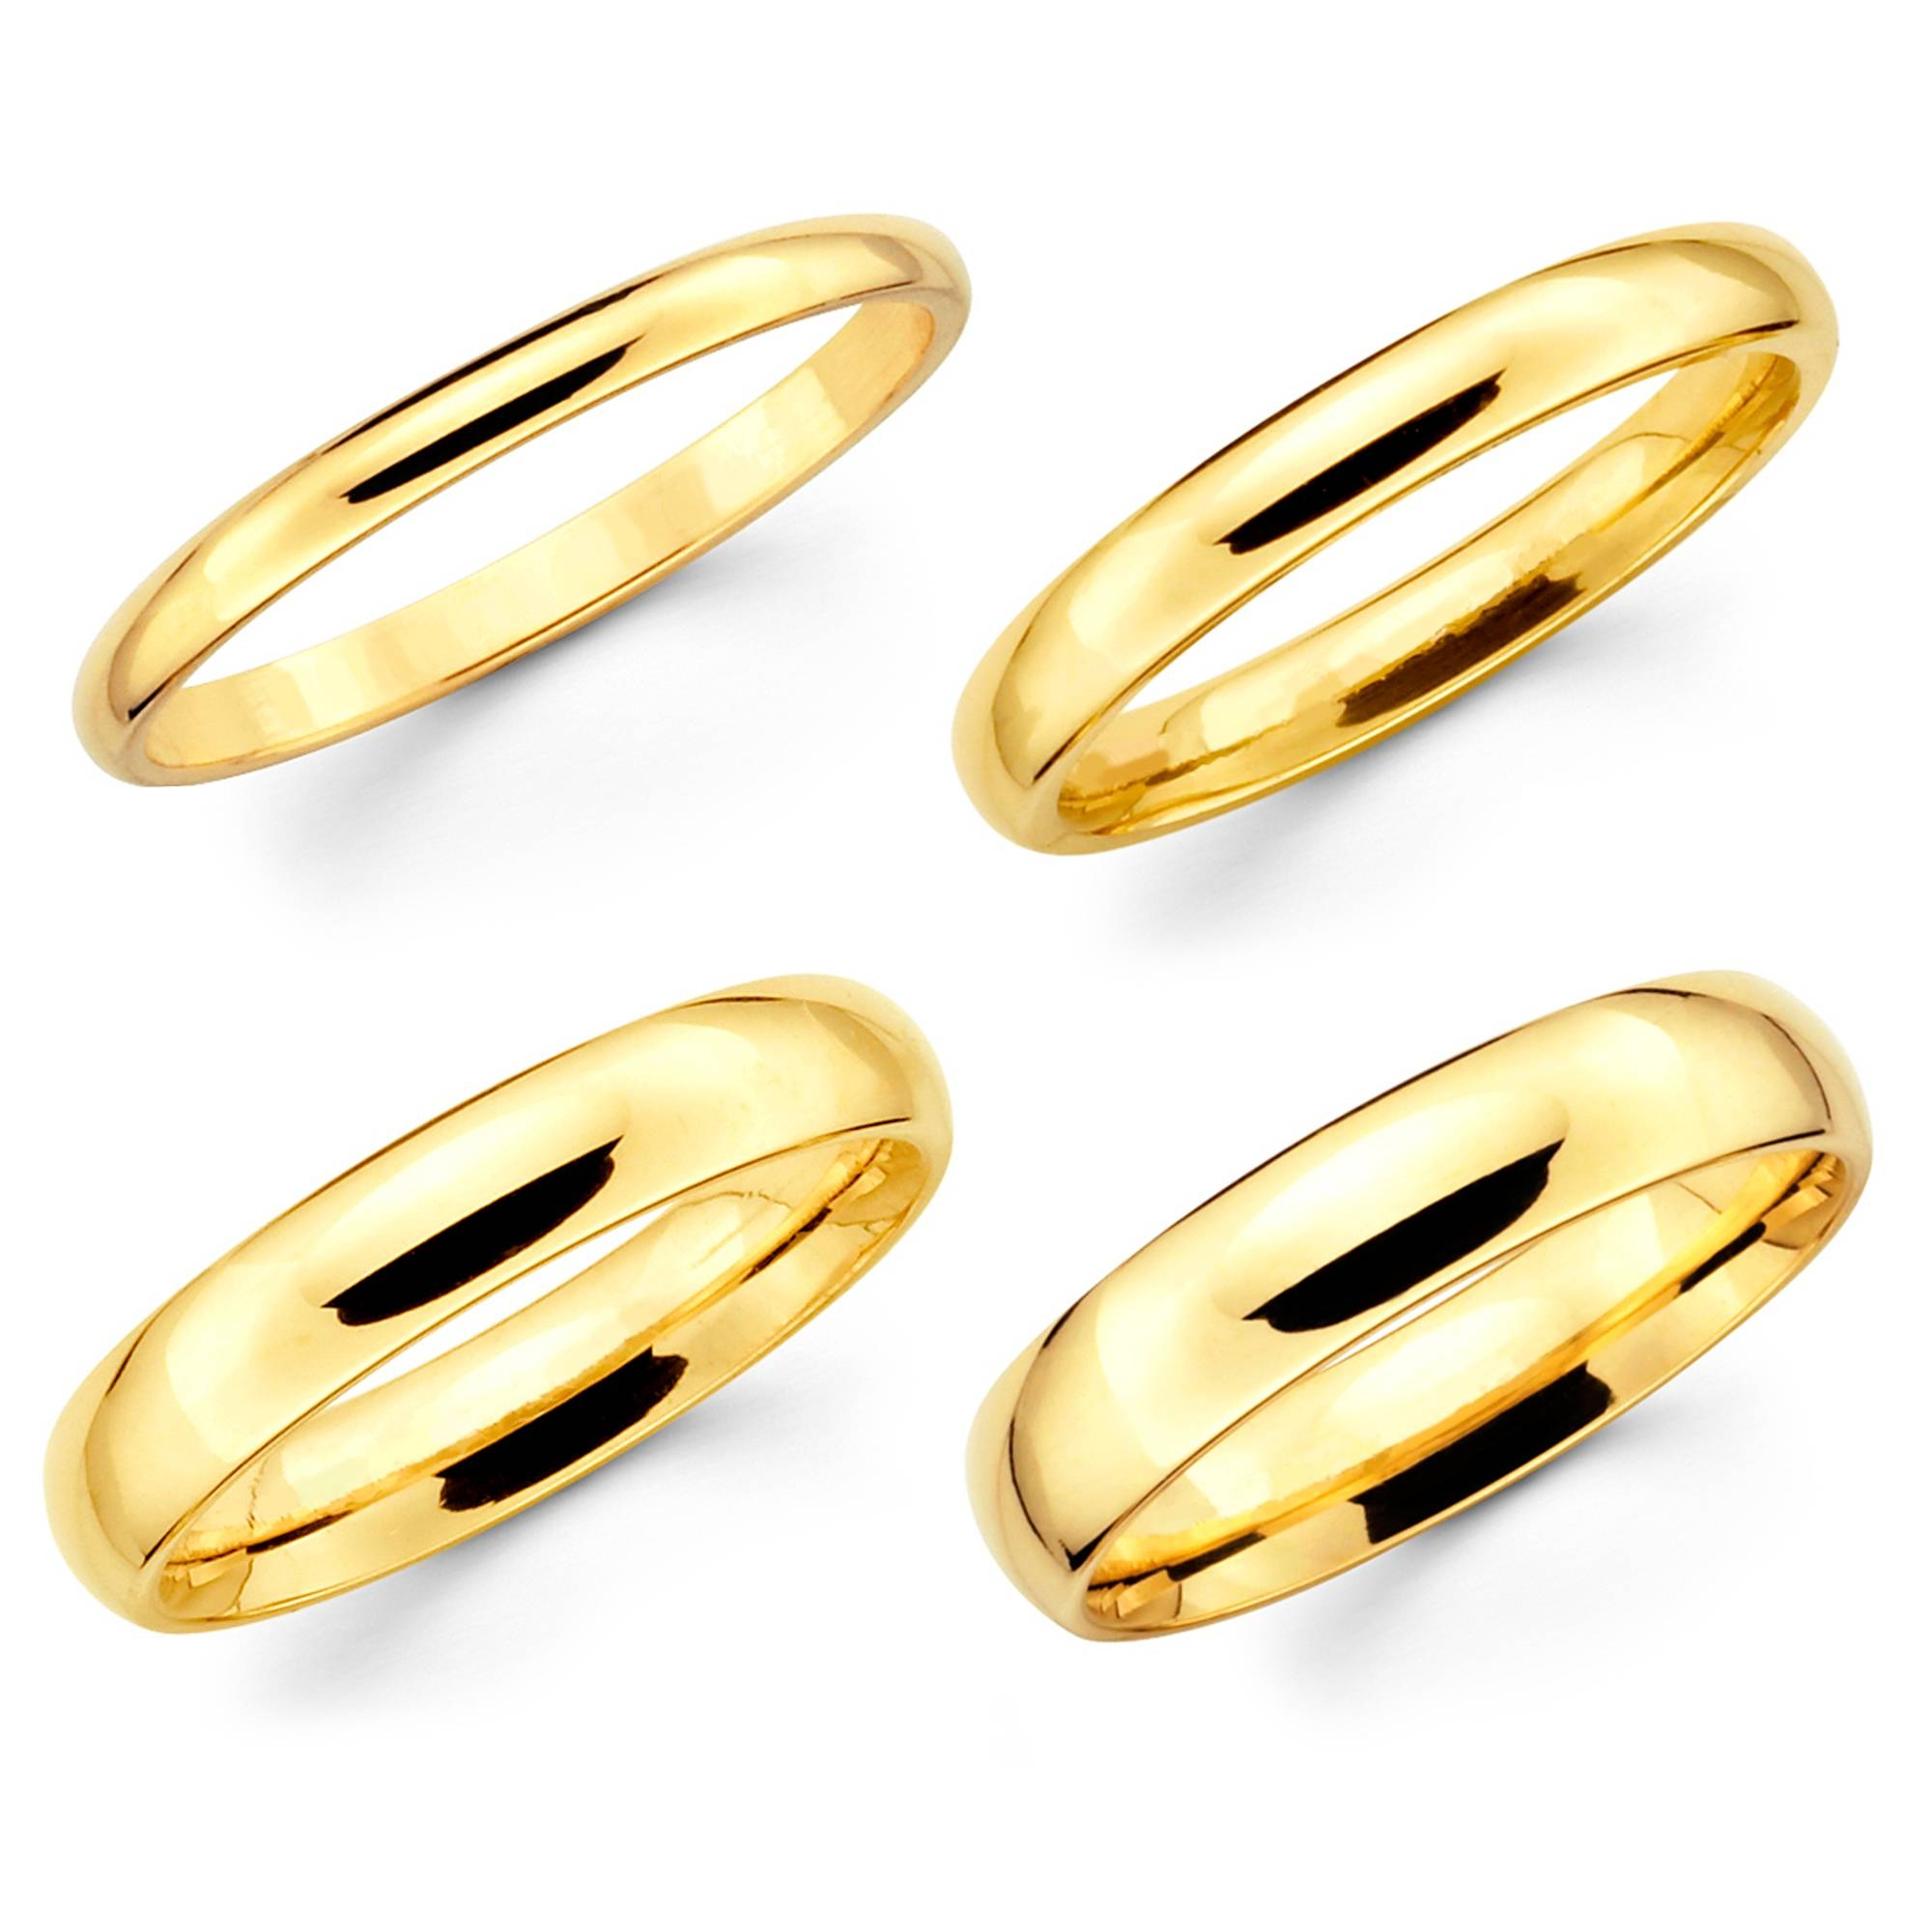 10 Carat Gold Wedding Bands Tags : Pure Gold Wedding Rings Wedding With Regard To Plain Gold Bands Wedding Rings (View 1 of 15)